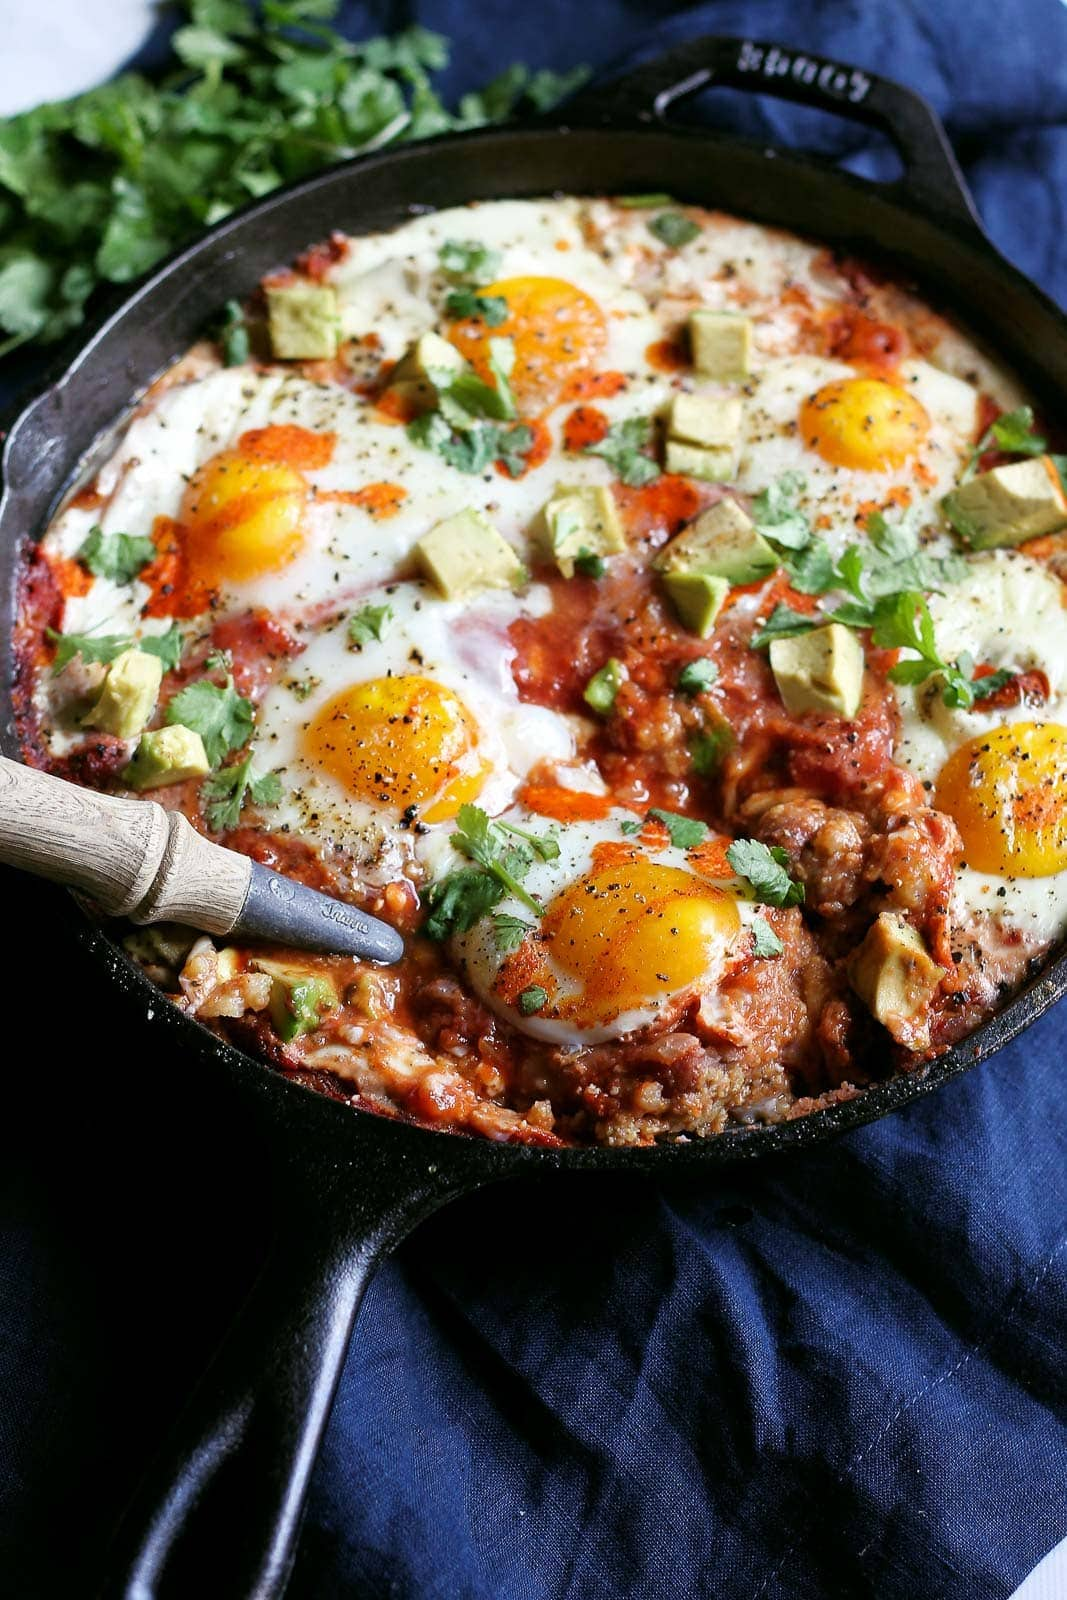 Layer upon layer of breakfast goodness! Baked polenta topped with creamy refried beans, chunky tomato salsa, cheese and eggs. Made in one skillet! Healthy, filling and over 14g protein per serving.